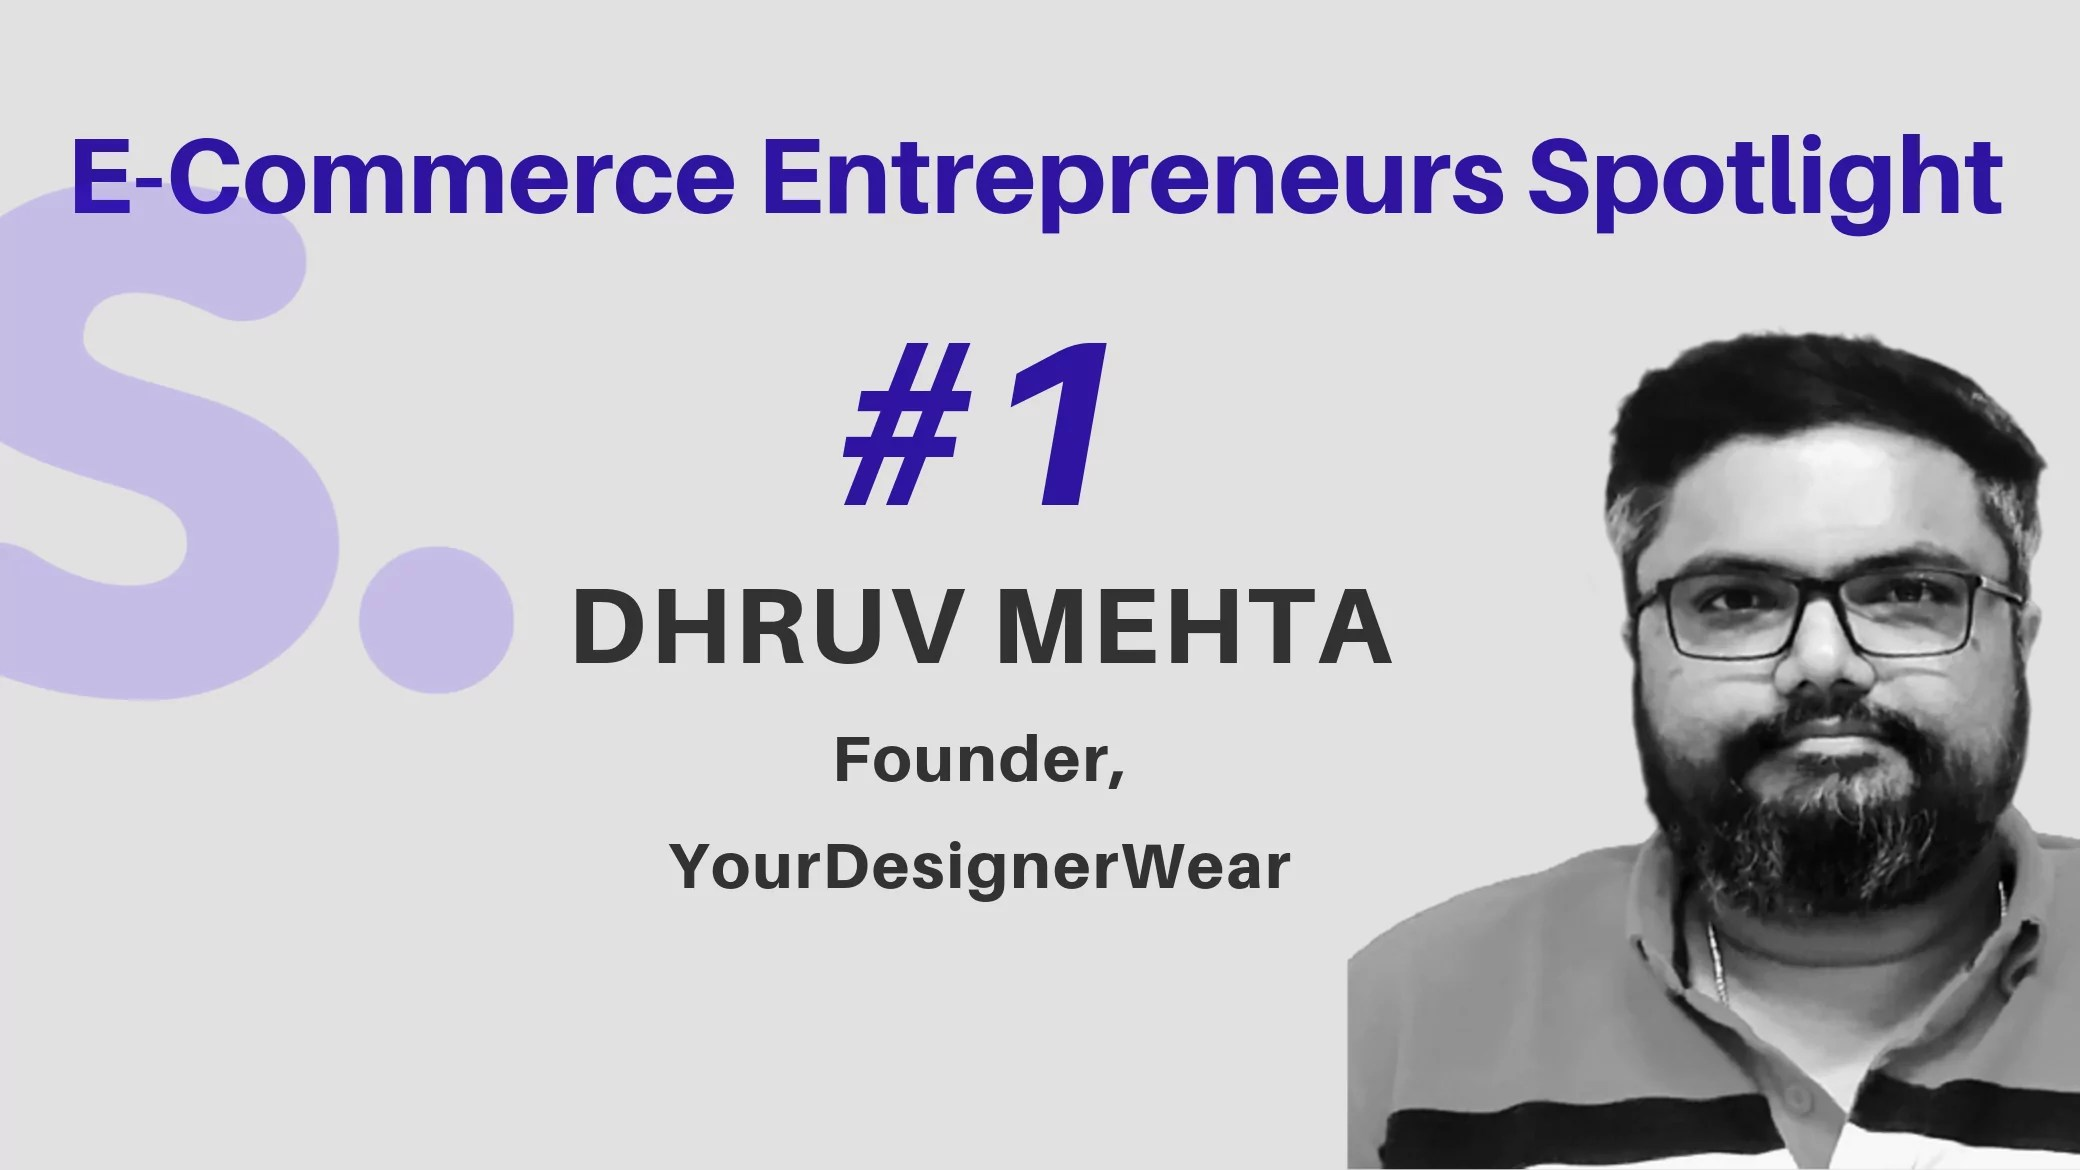 E-Commerce Entrepreneur's Spotlight : Dhruv Mehta